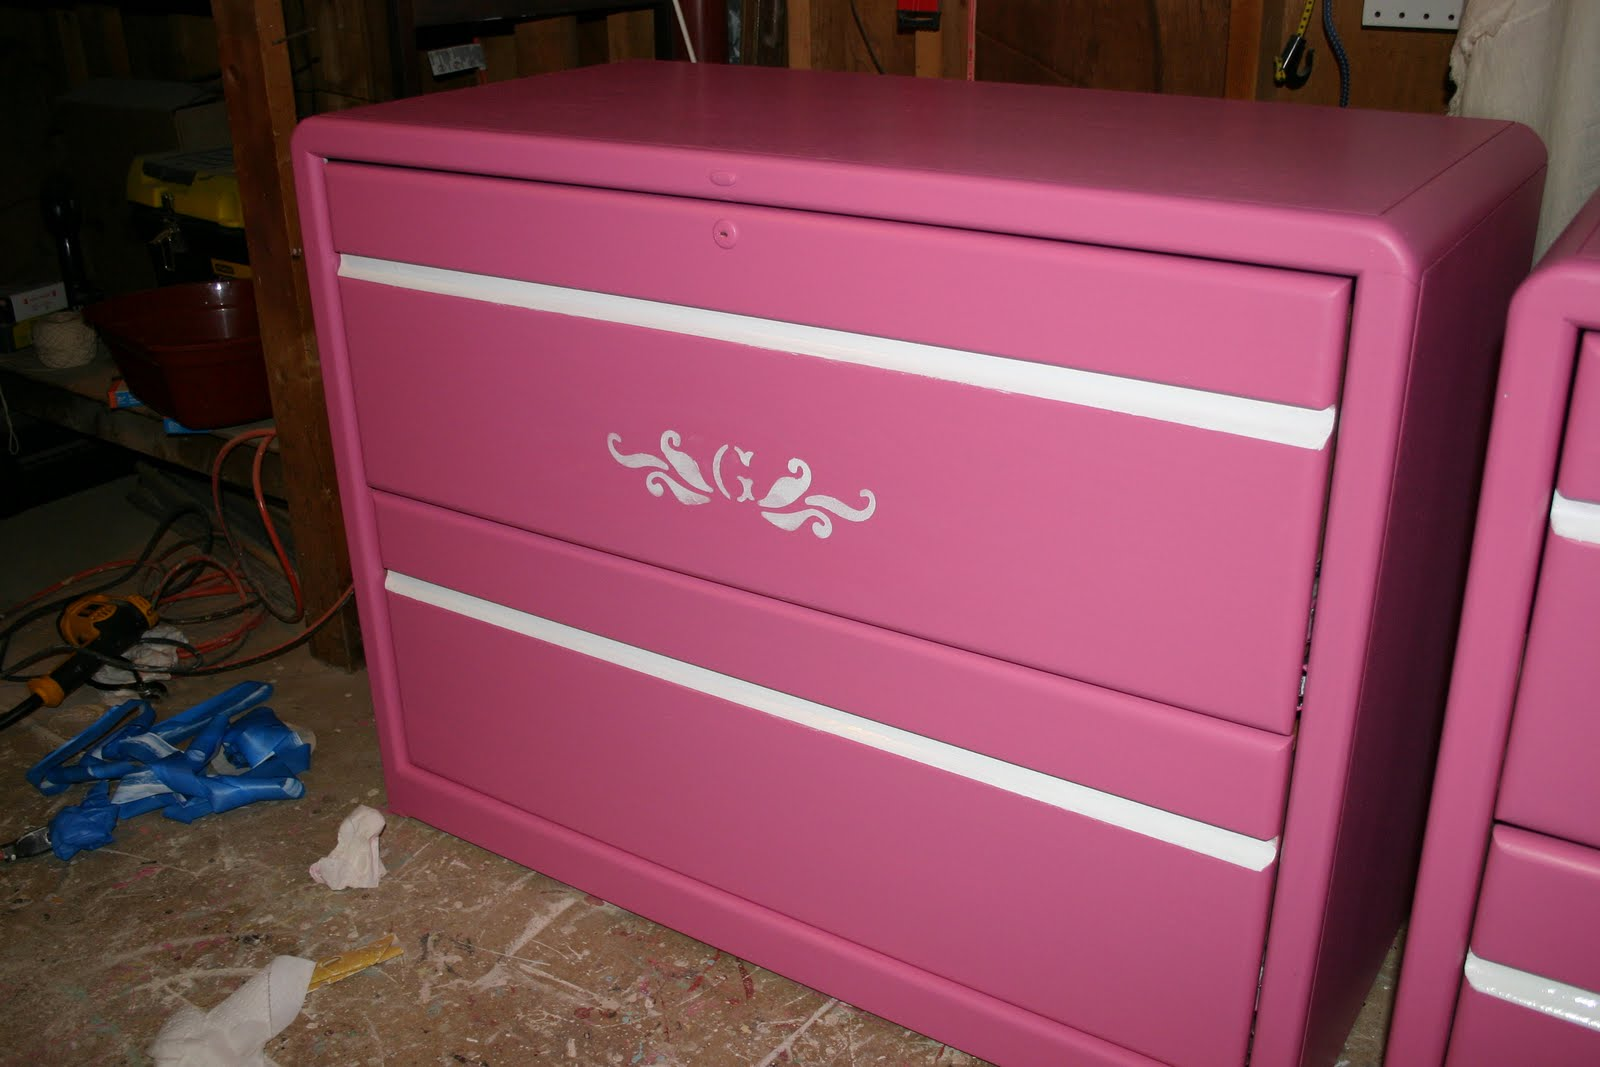 wooden filing cabinets to little girls 39 toy boxes cassie bustamante. Black Bedroom Furniture Sets. Home Design Ideas